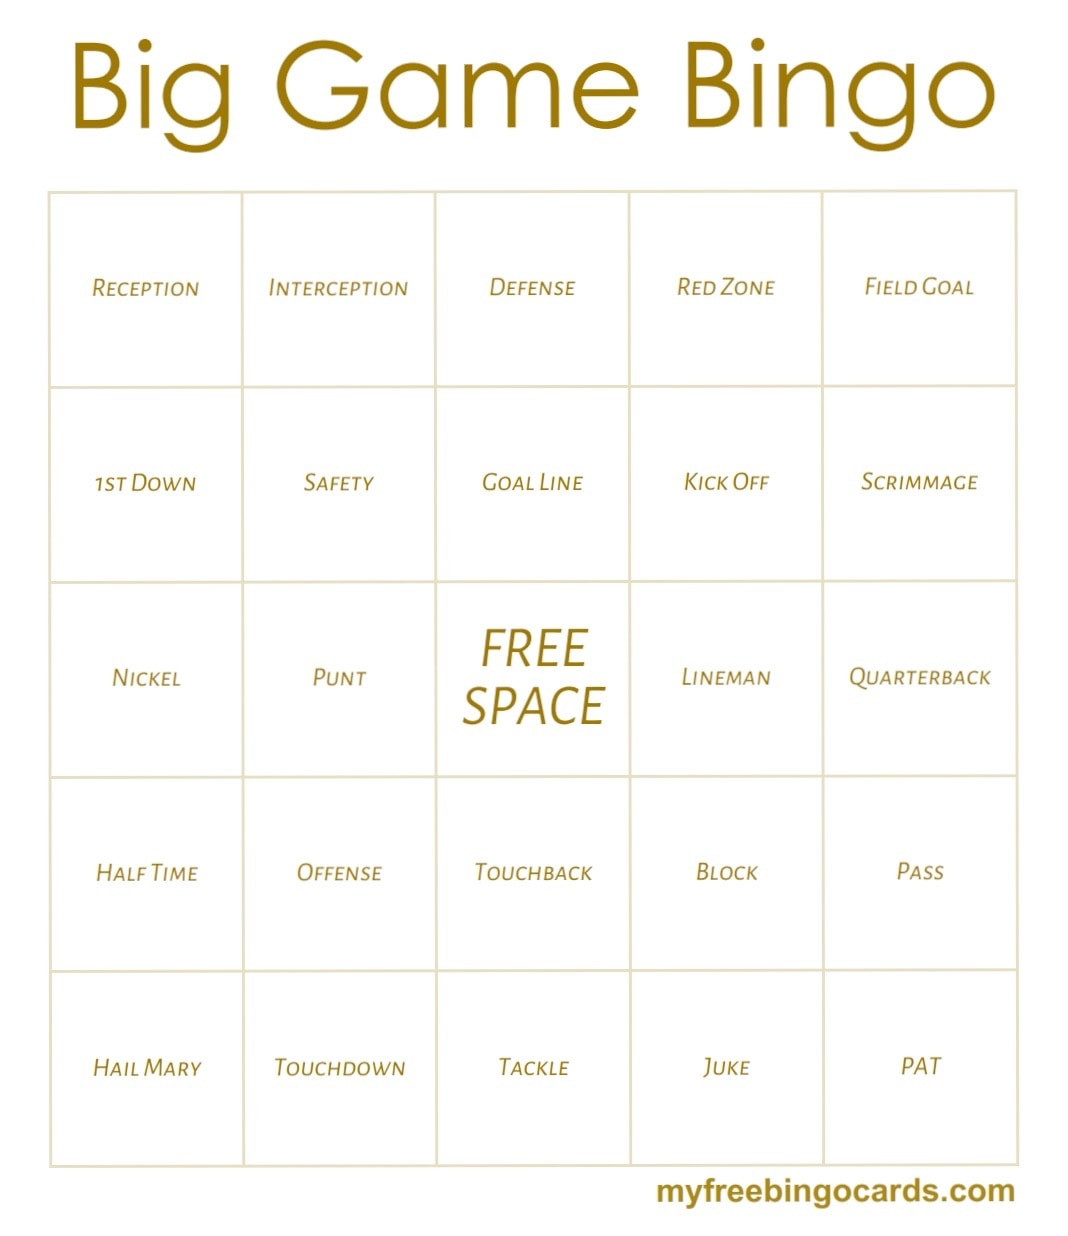 Big Game Bingo - www.refashionablylate.com